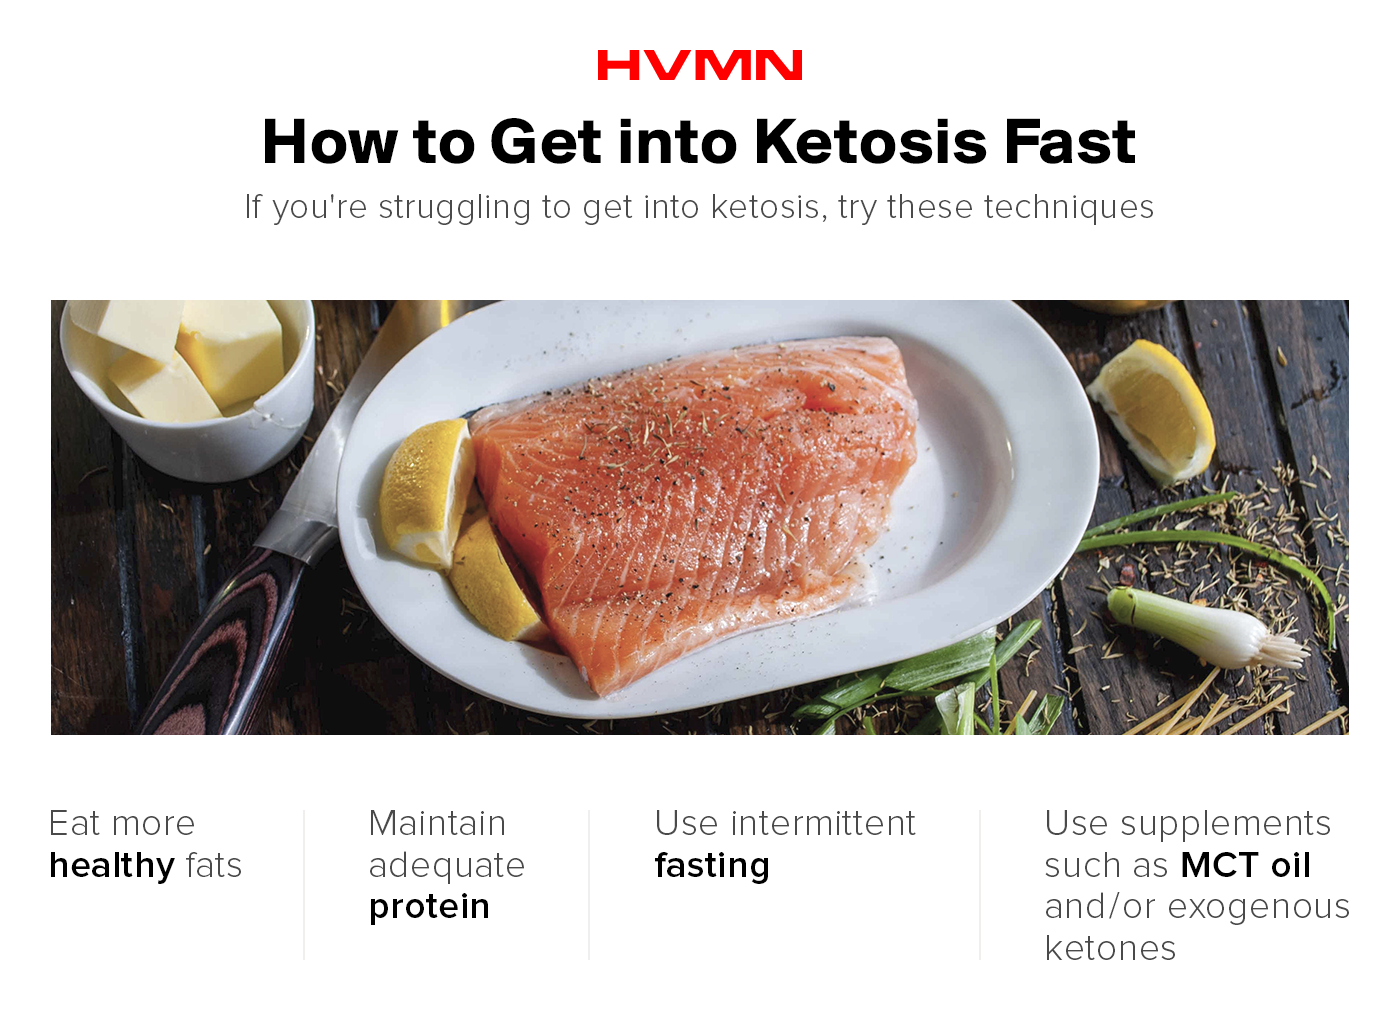 An image of a plate of salmon, showing different methods of how to get into ketosis fast